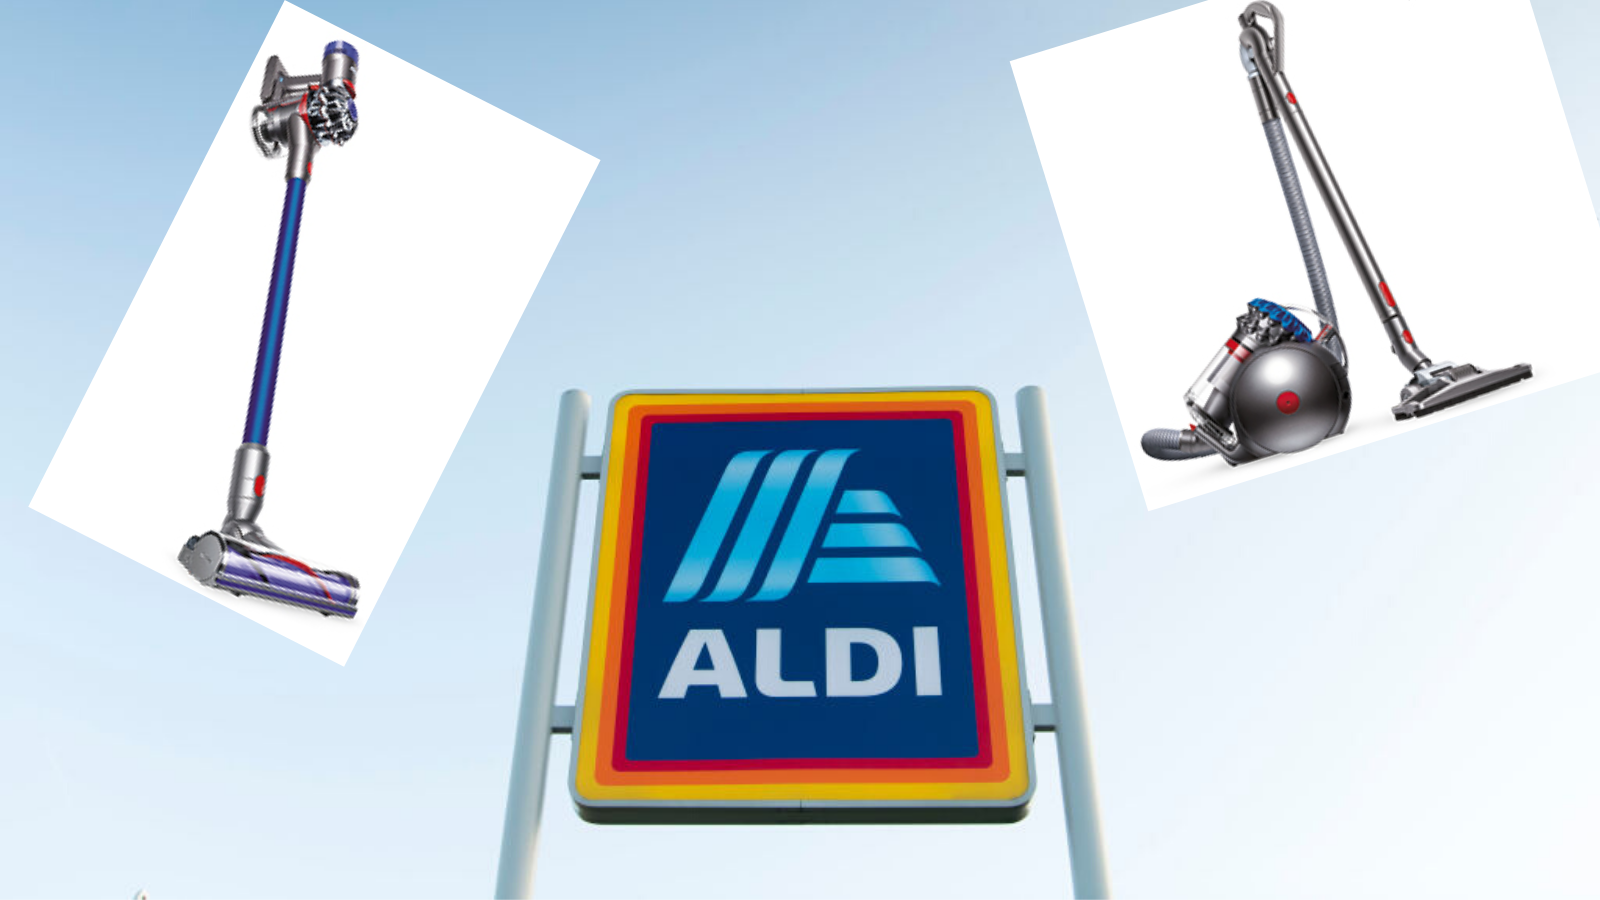 Aldi will save you $200 on Dyson vacuums just for today